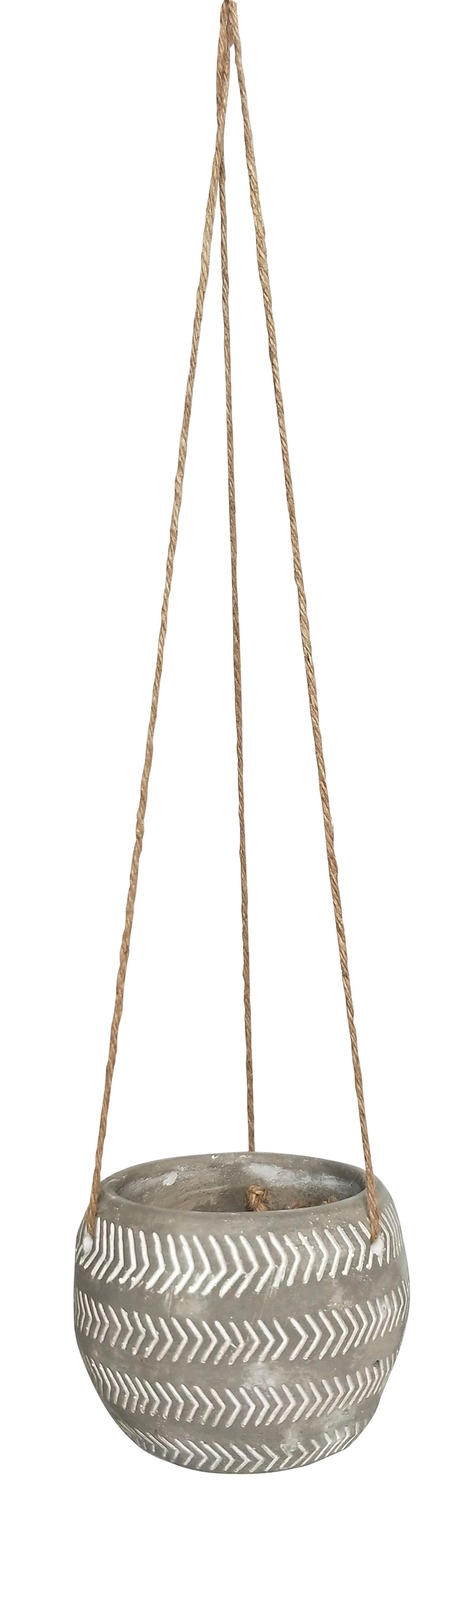 White Arrow Hanging Concrete Planter (12cm) image